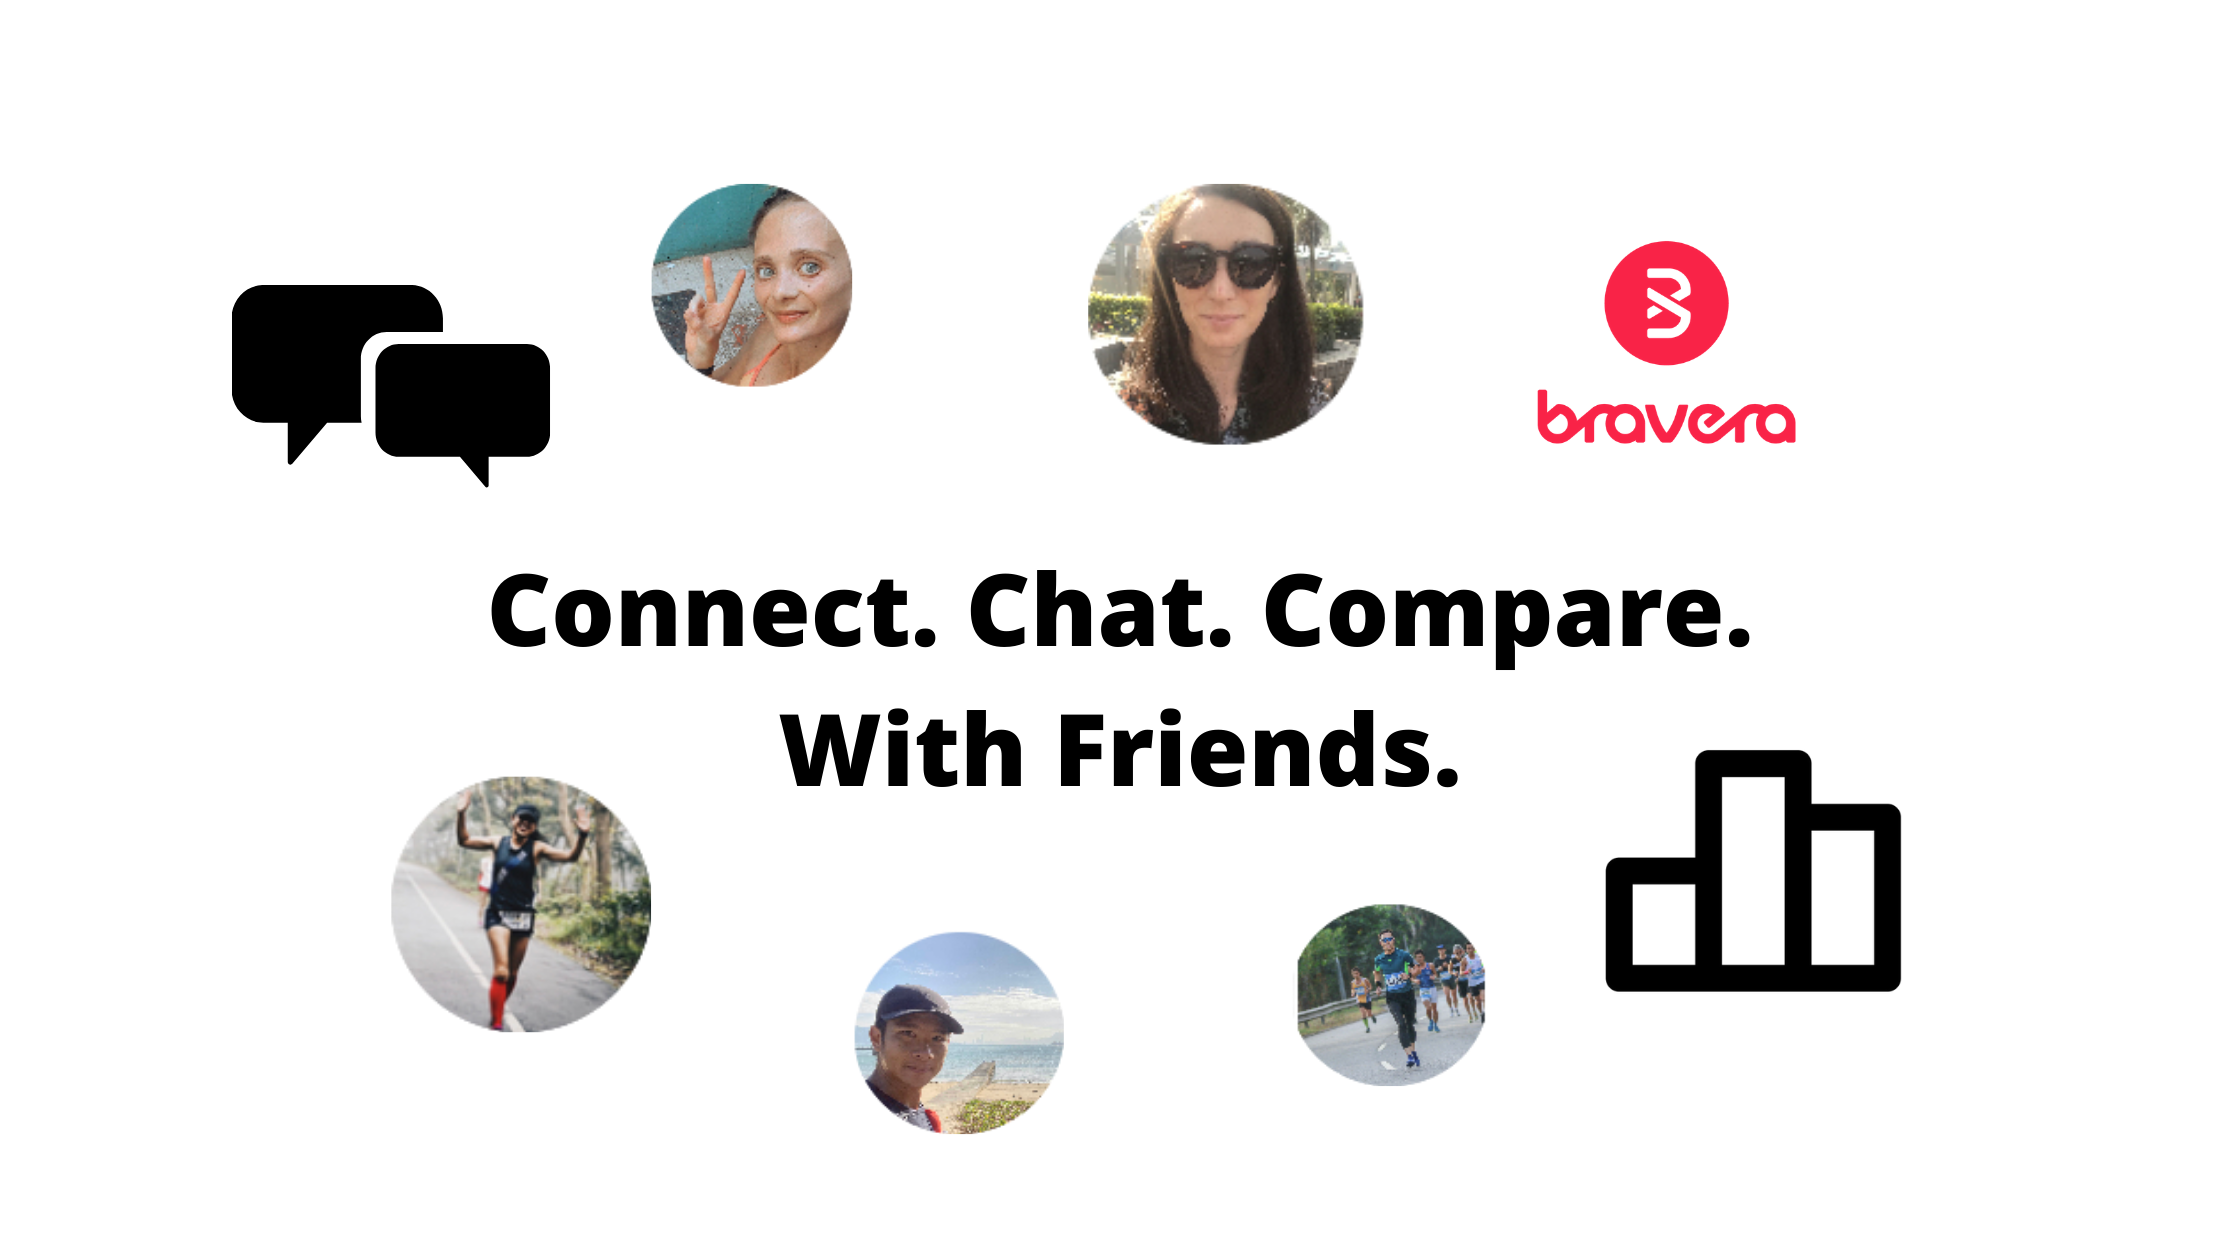 Connect. Chat. Compare. With Friends.